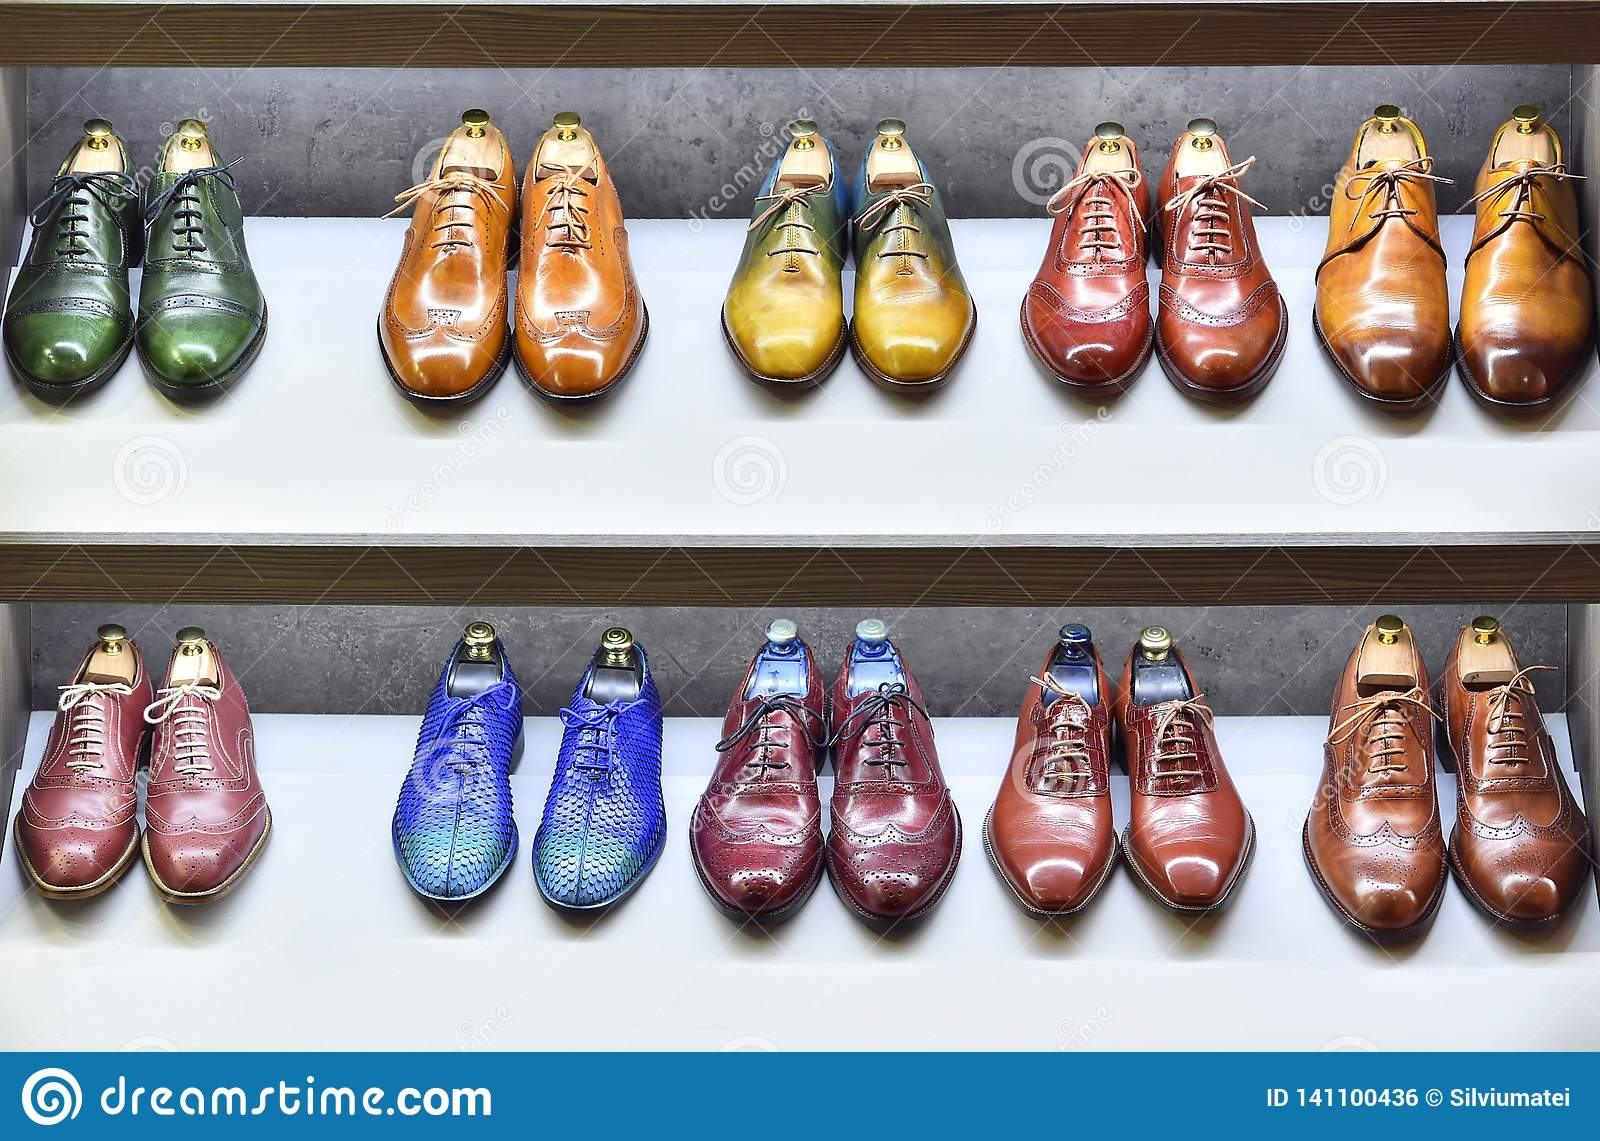 Colorfull pairs of shoes are exposed for sale.